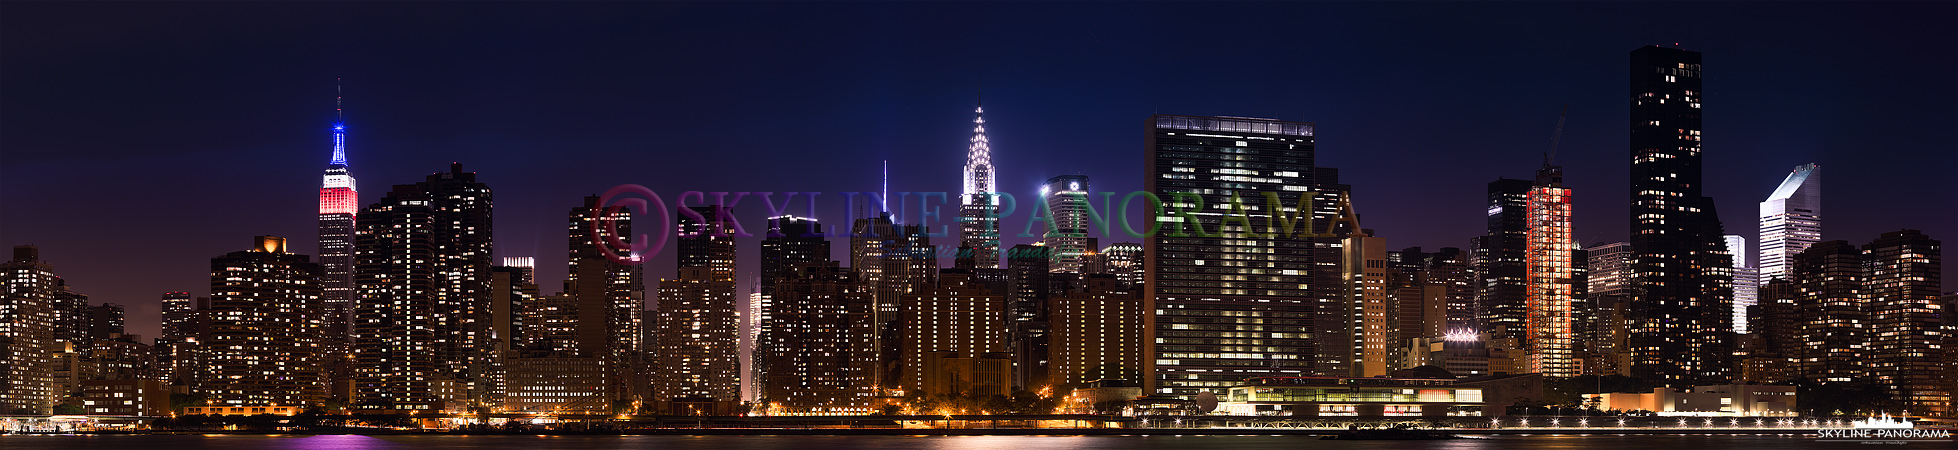 new york skyline panorama p 00625 skyline. Black Bedroom Furniture Sets. Home Design Ideas